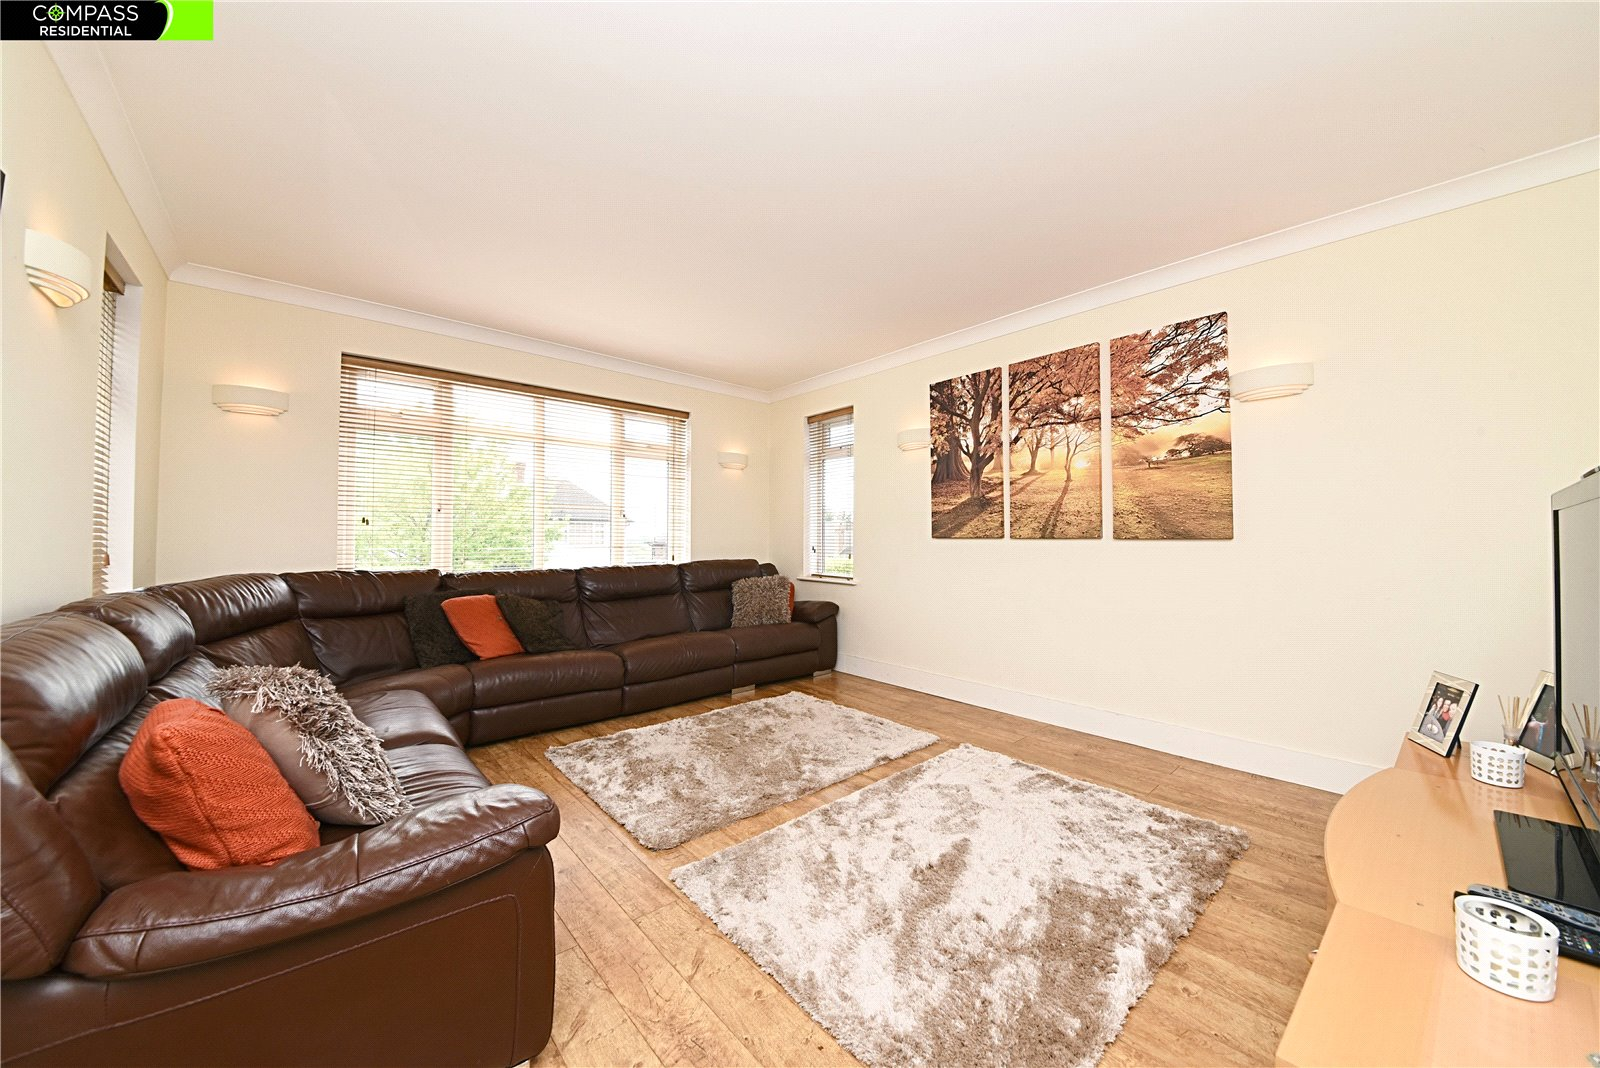 4 bed house for sale in Stanmore, HA7 3AZ 1